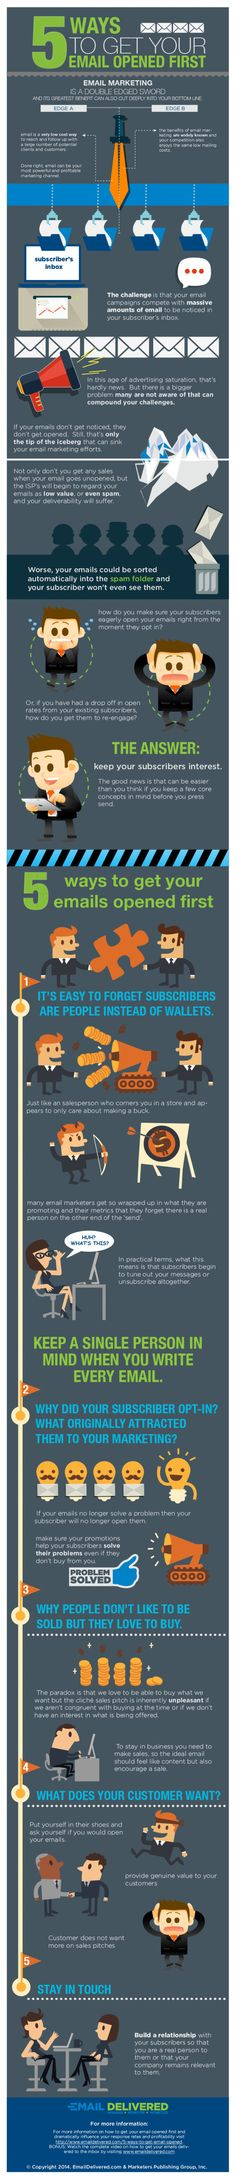 5 ways to make sure your emails get opened - #marketing #infographic